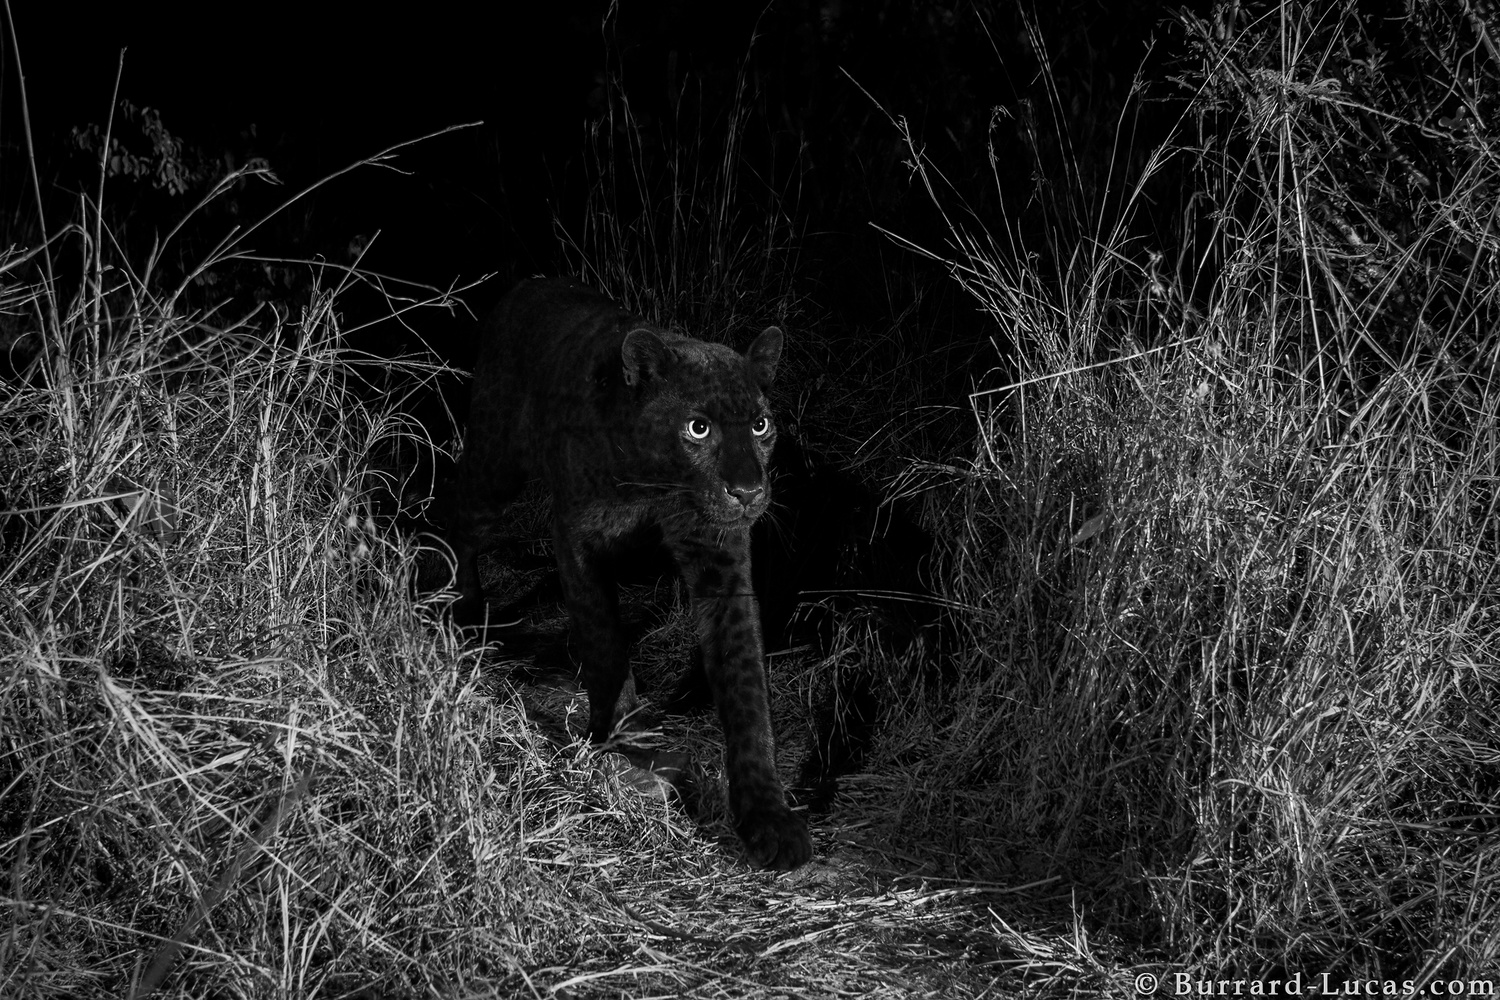 a black leopard emerging from a path at night